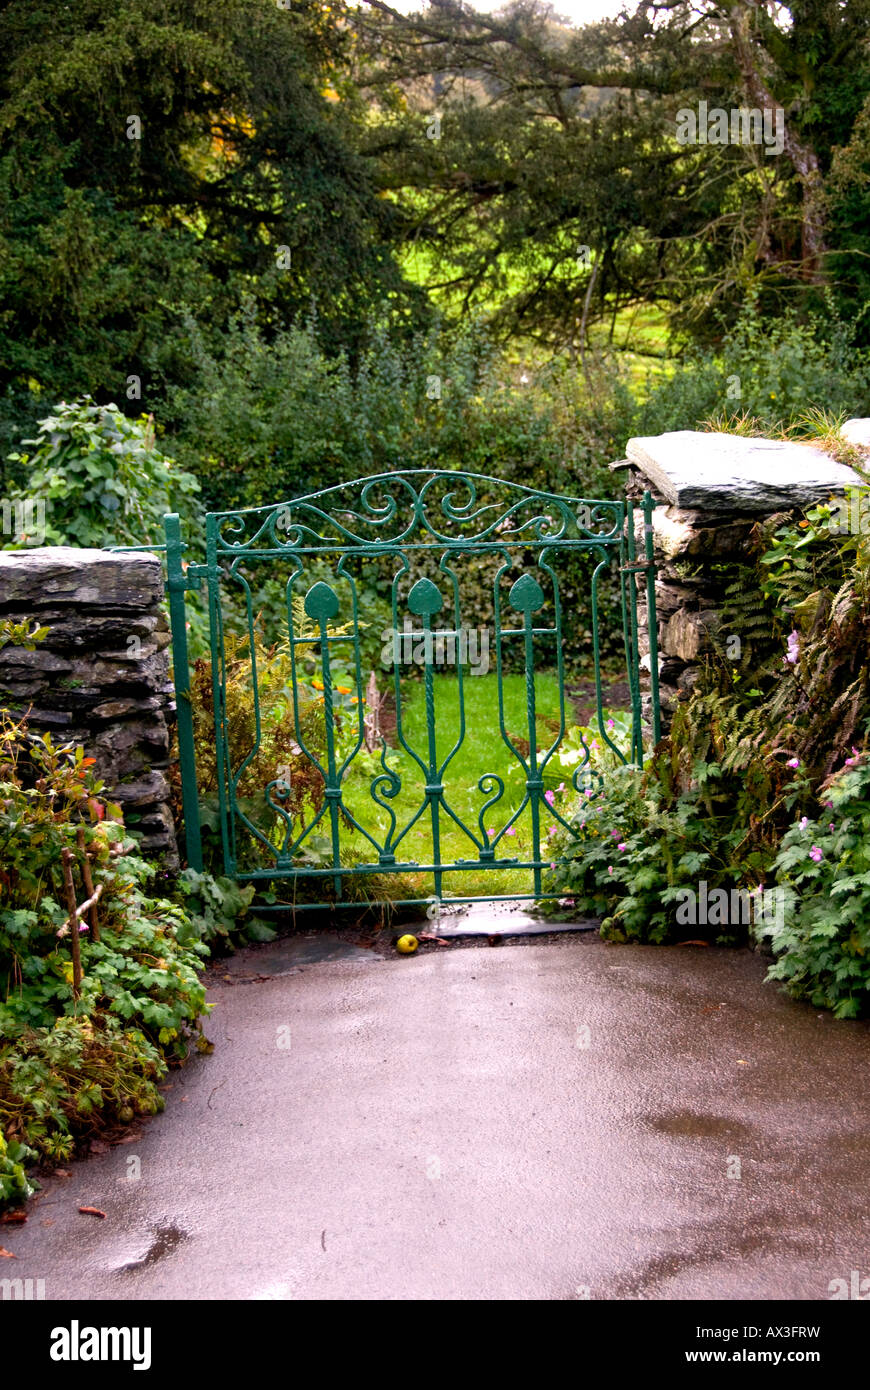 Garden gate featured in Beatrix Potter tales at Hill Top, Near Sawrey, UK, Lake District - Stock Image